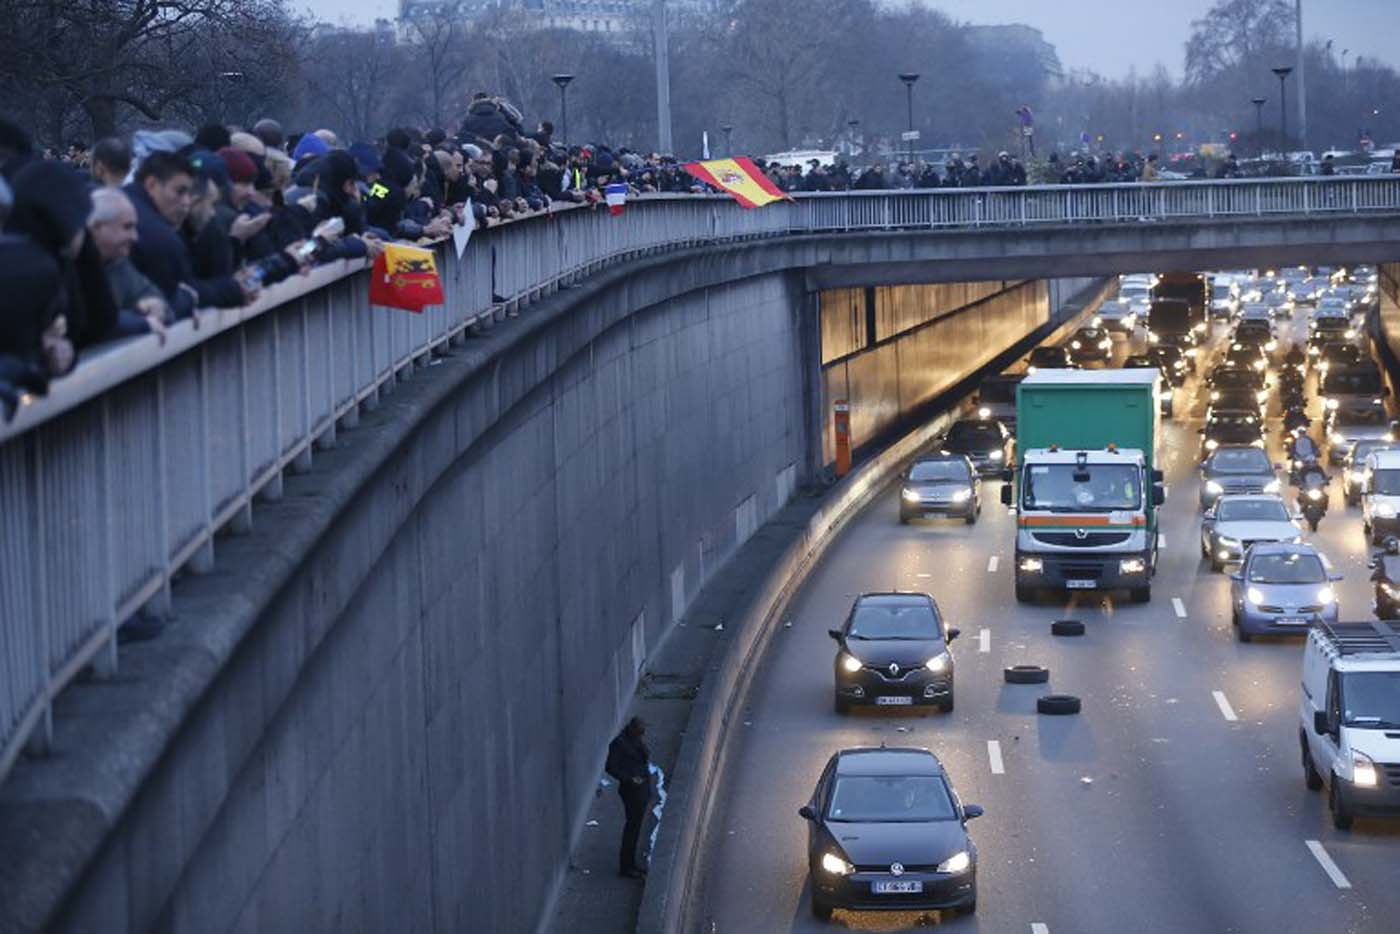 People and protestors with European countries flags stand above the ringroad (peripherique) during a taxi drivers demonstration against the VTC (transport vehicle with chauffeur) on January 26, 2016 early in the morning at porte Maillot in Paris. AFP PHOTO / THOMAS SAMSON / AFP / THOMAS SAMSON